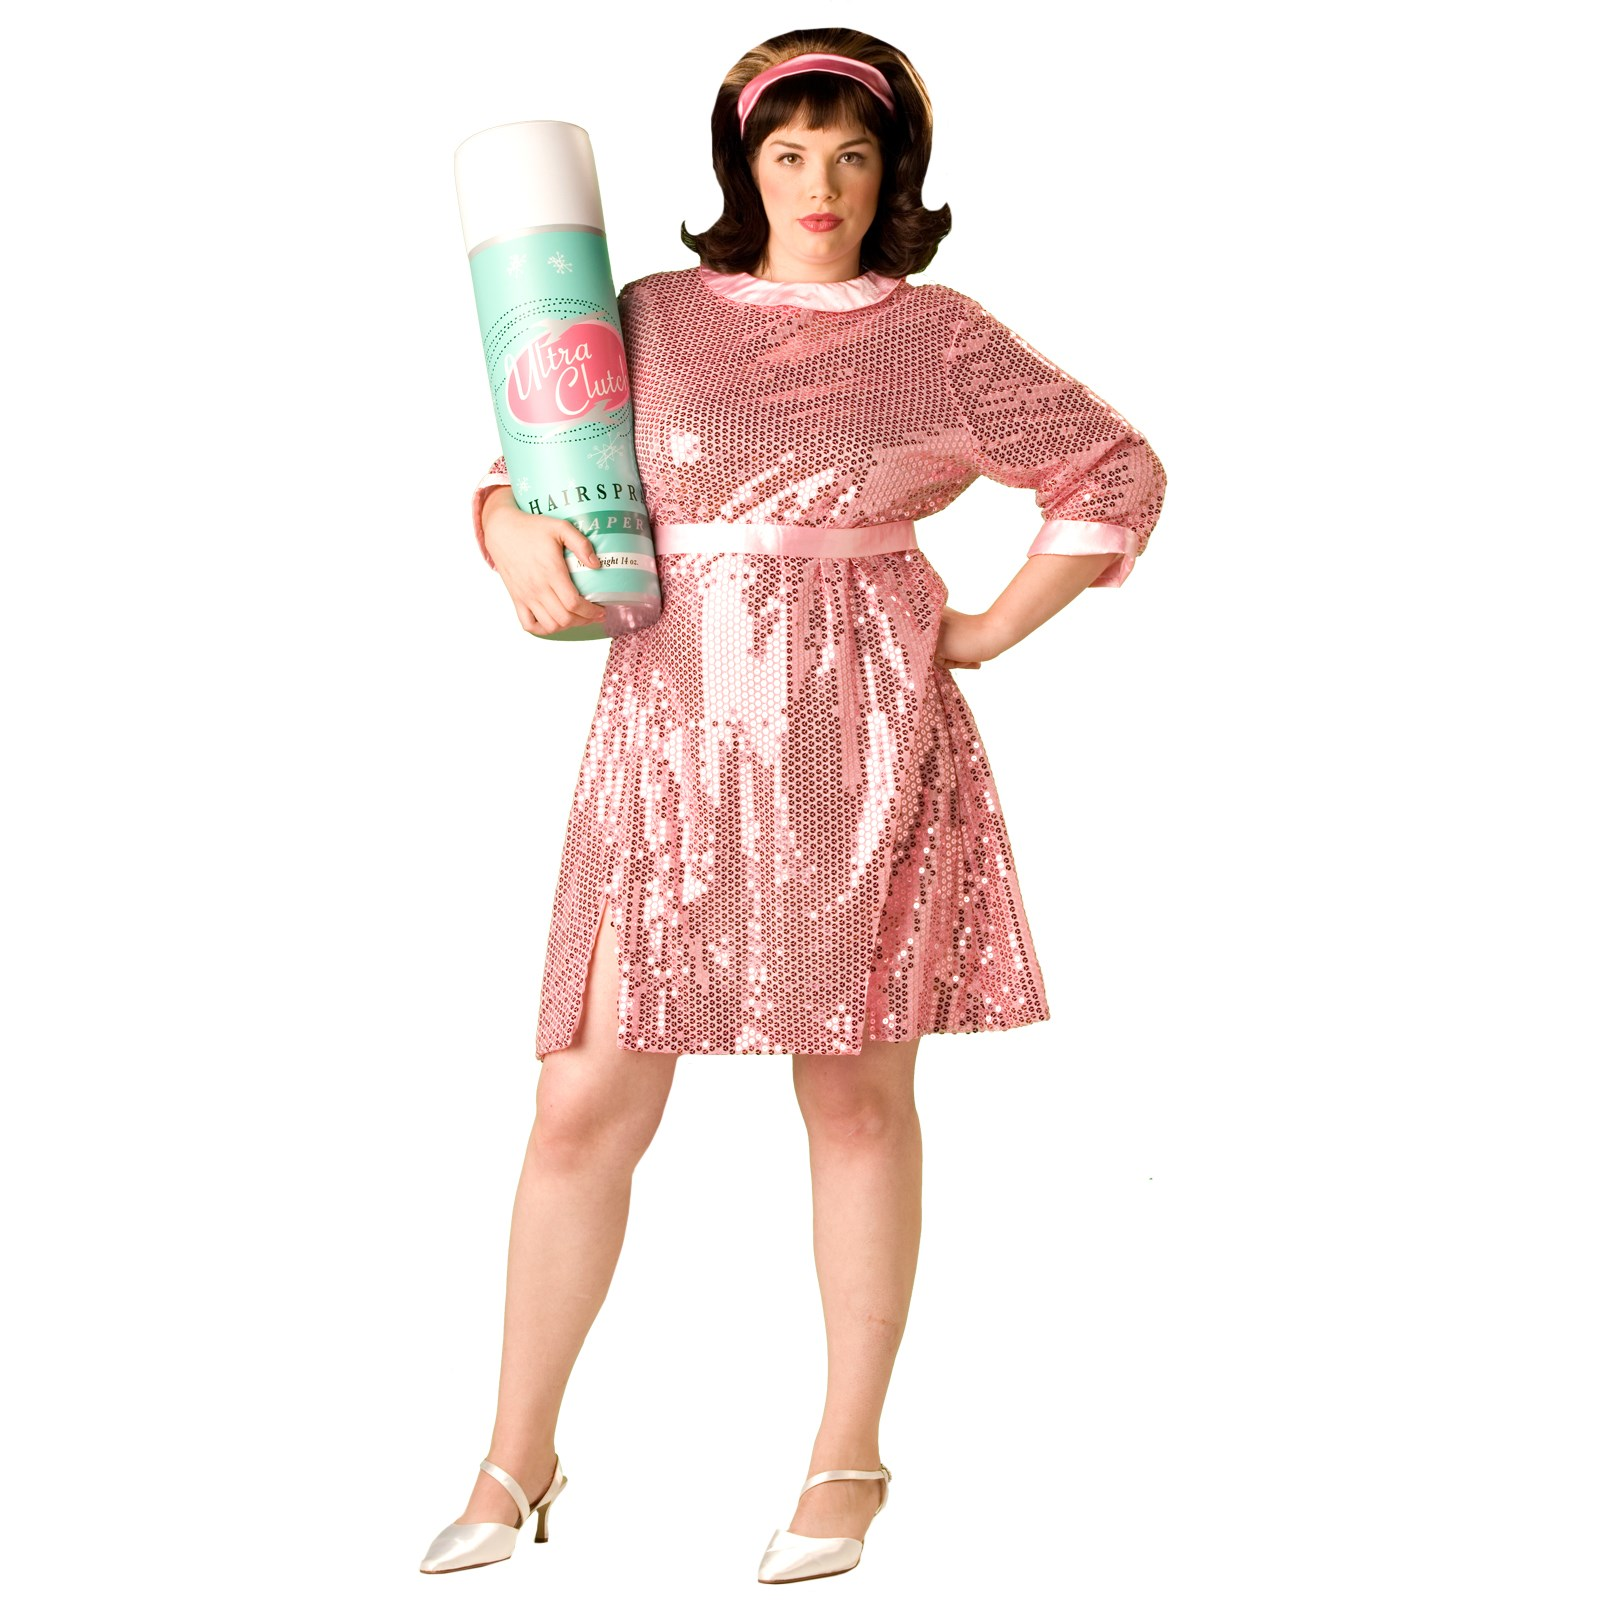 hairspray costumes for adults